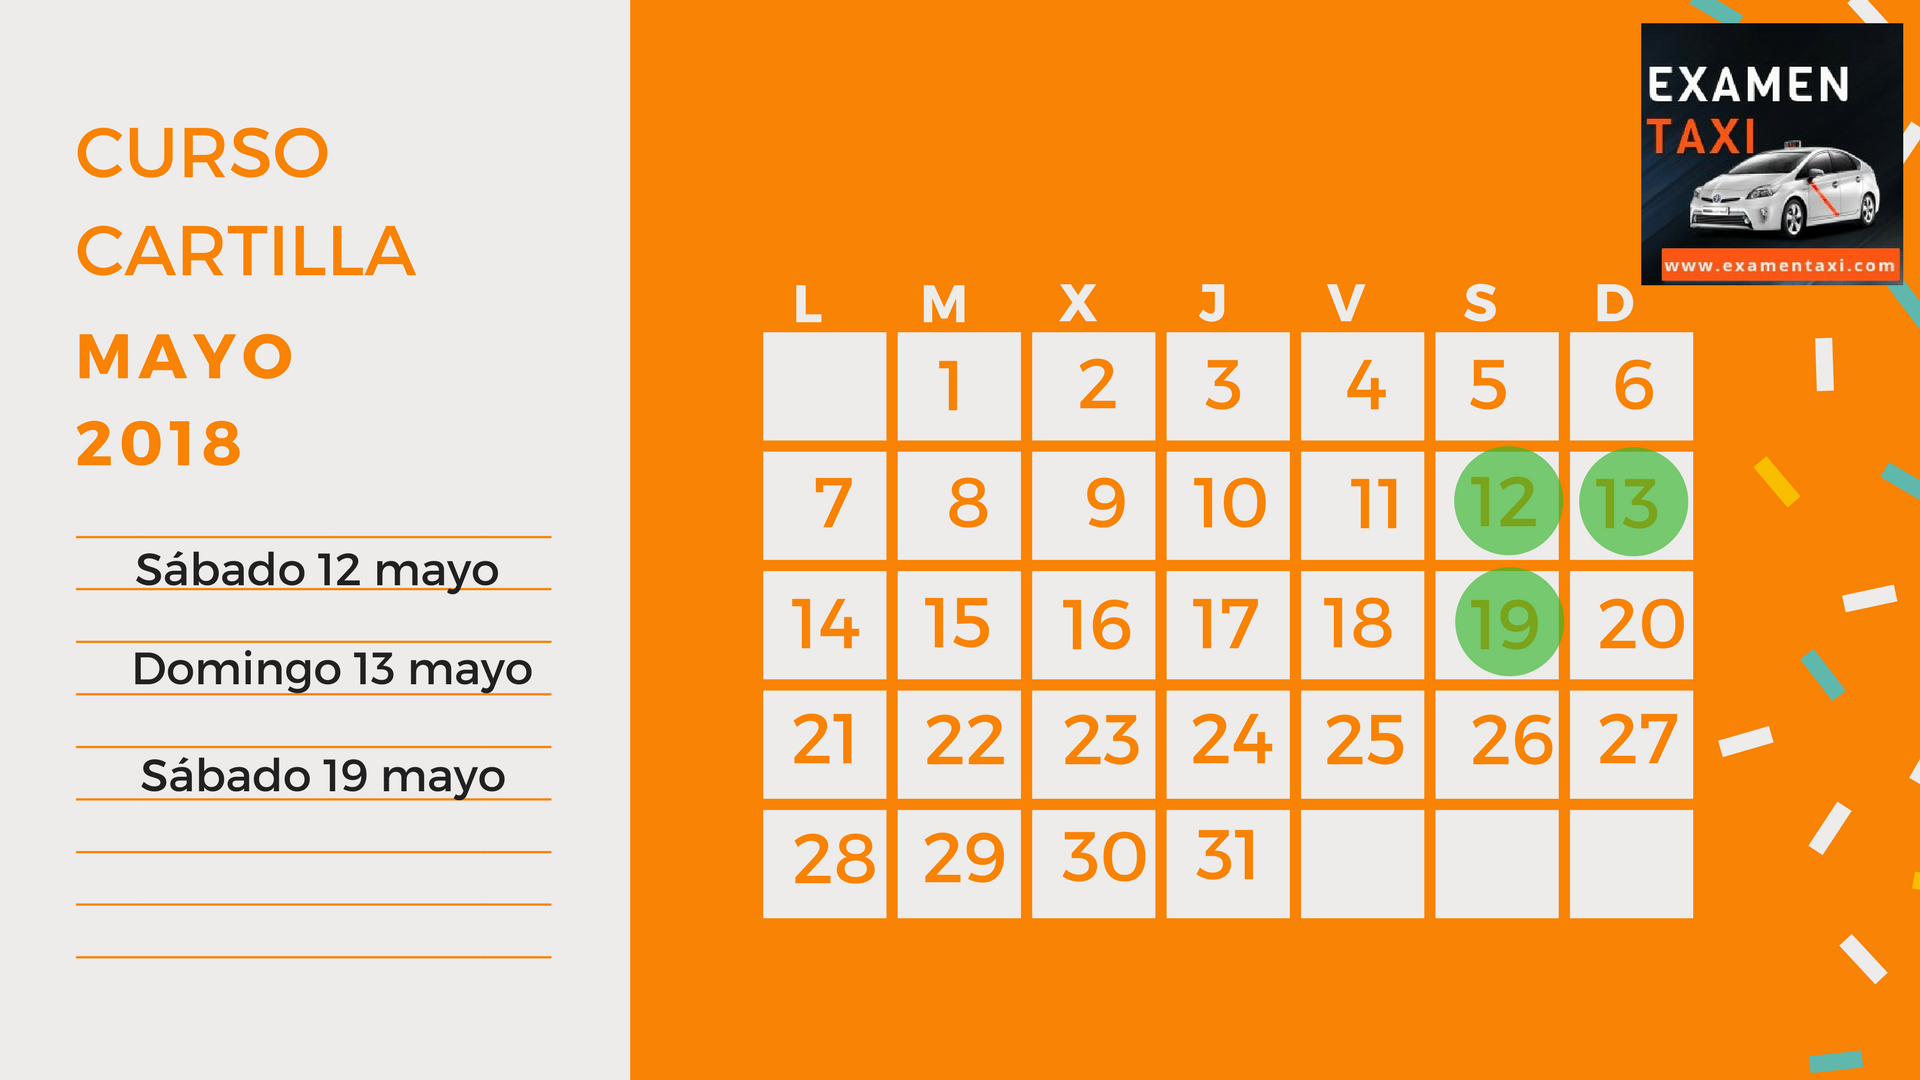 Calendario Curso Cartilla Mayo 2018